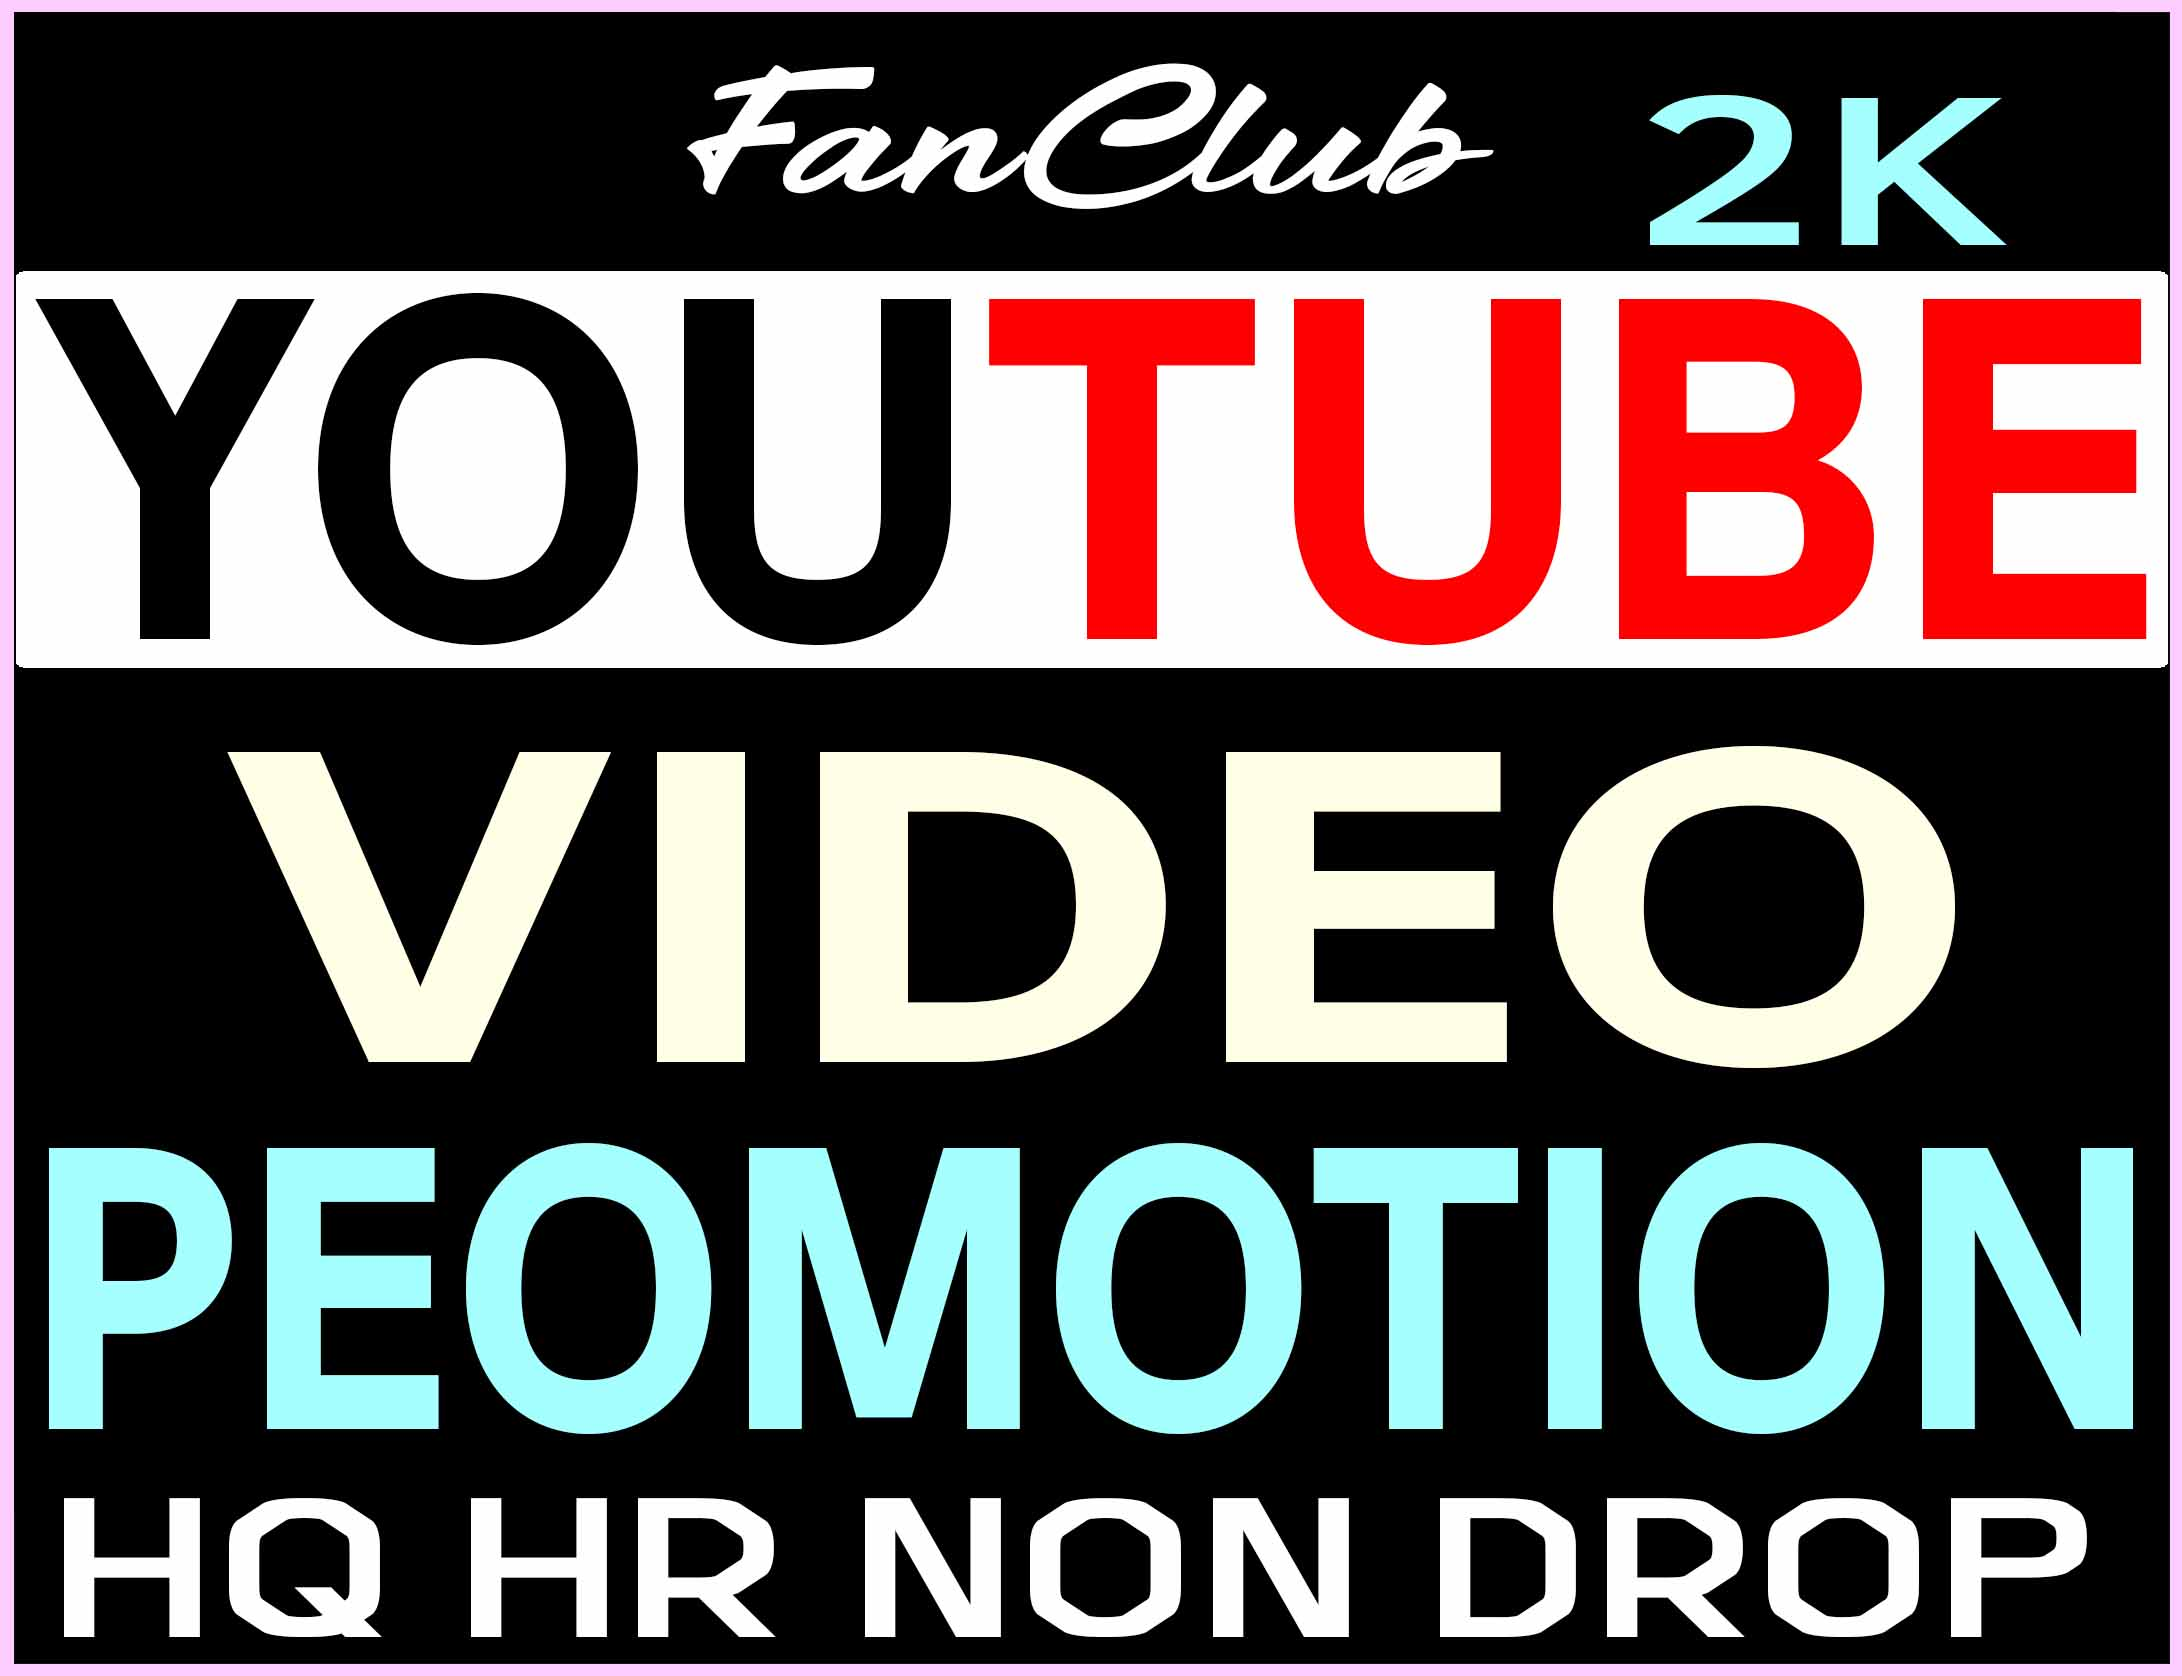 SUPER FAST YOUTUBE VIDEO PROMOTION AND MARKETING REAL ORGANIC WITH NON DROP GUARANTEED